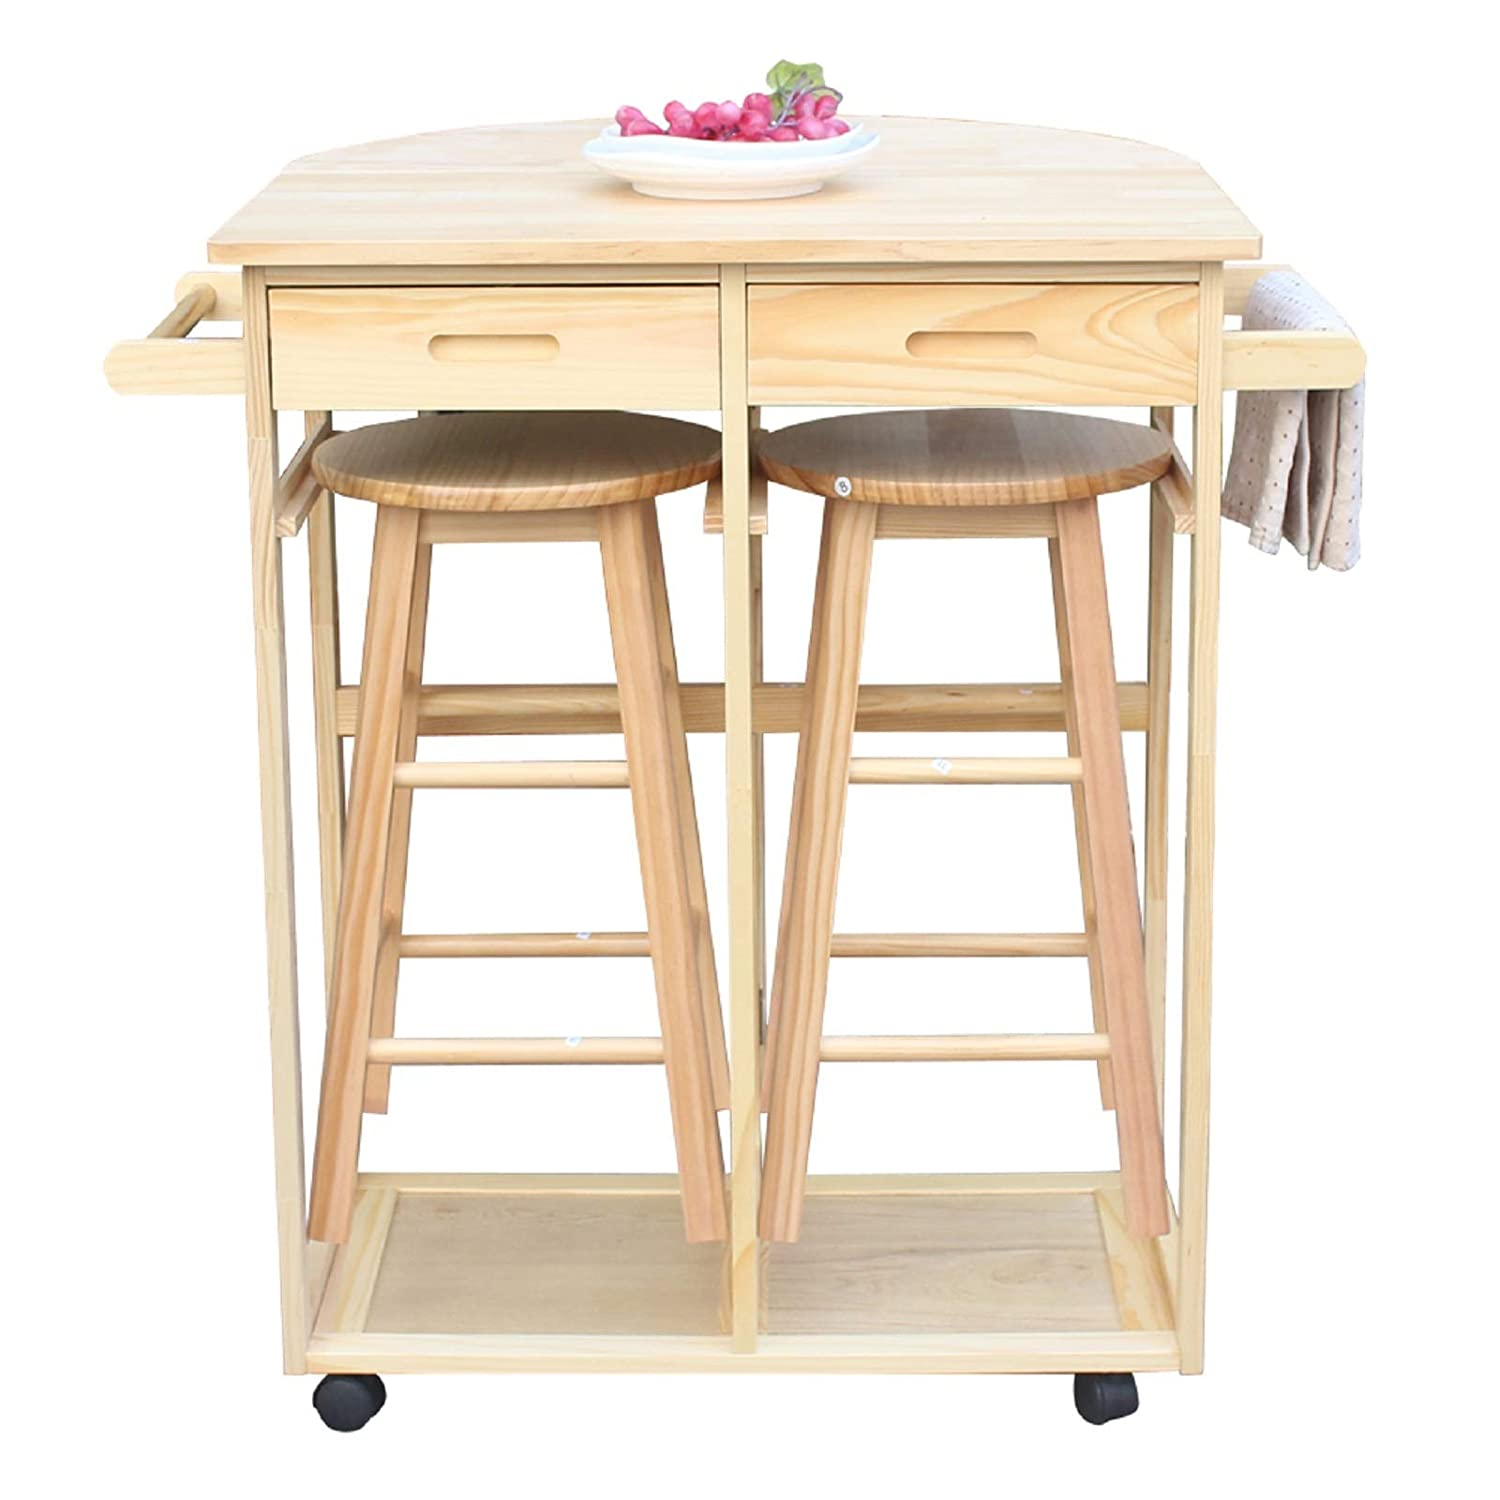 3 PCS Dining Table Set Pub Kitchen Folding Rolling Drop Leaf Island Trolley Kitchen Cart 1 Table and 2 Chairs Stools Home Restaurant Breakfast Bistro 2 Towel Hander Dining Room Home Kitchen Furniture